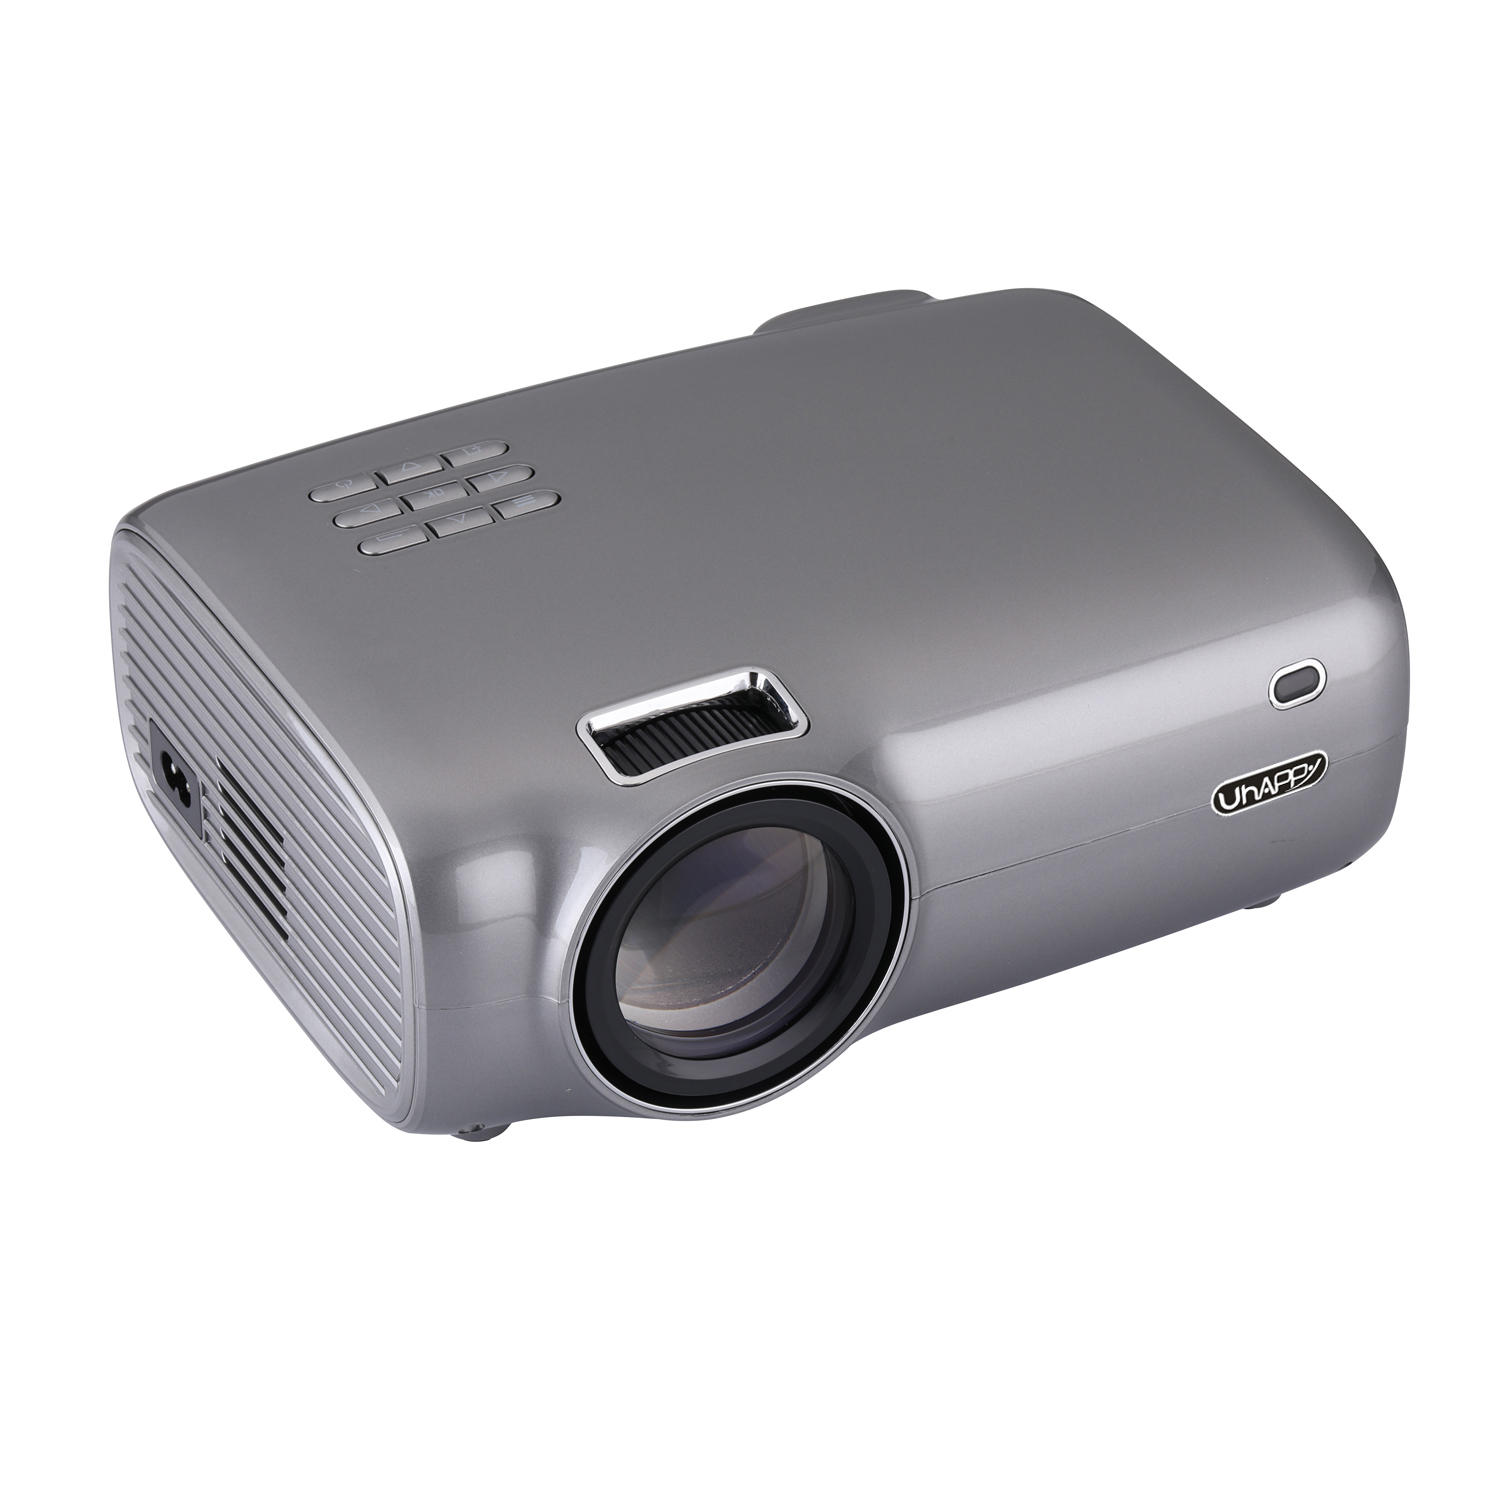 Uhappy U43 LCD 720p Max Support 1080p 2600 Lumens Home theater Mini Projector